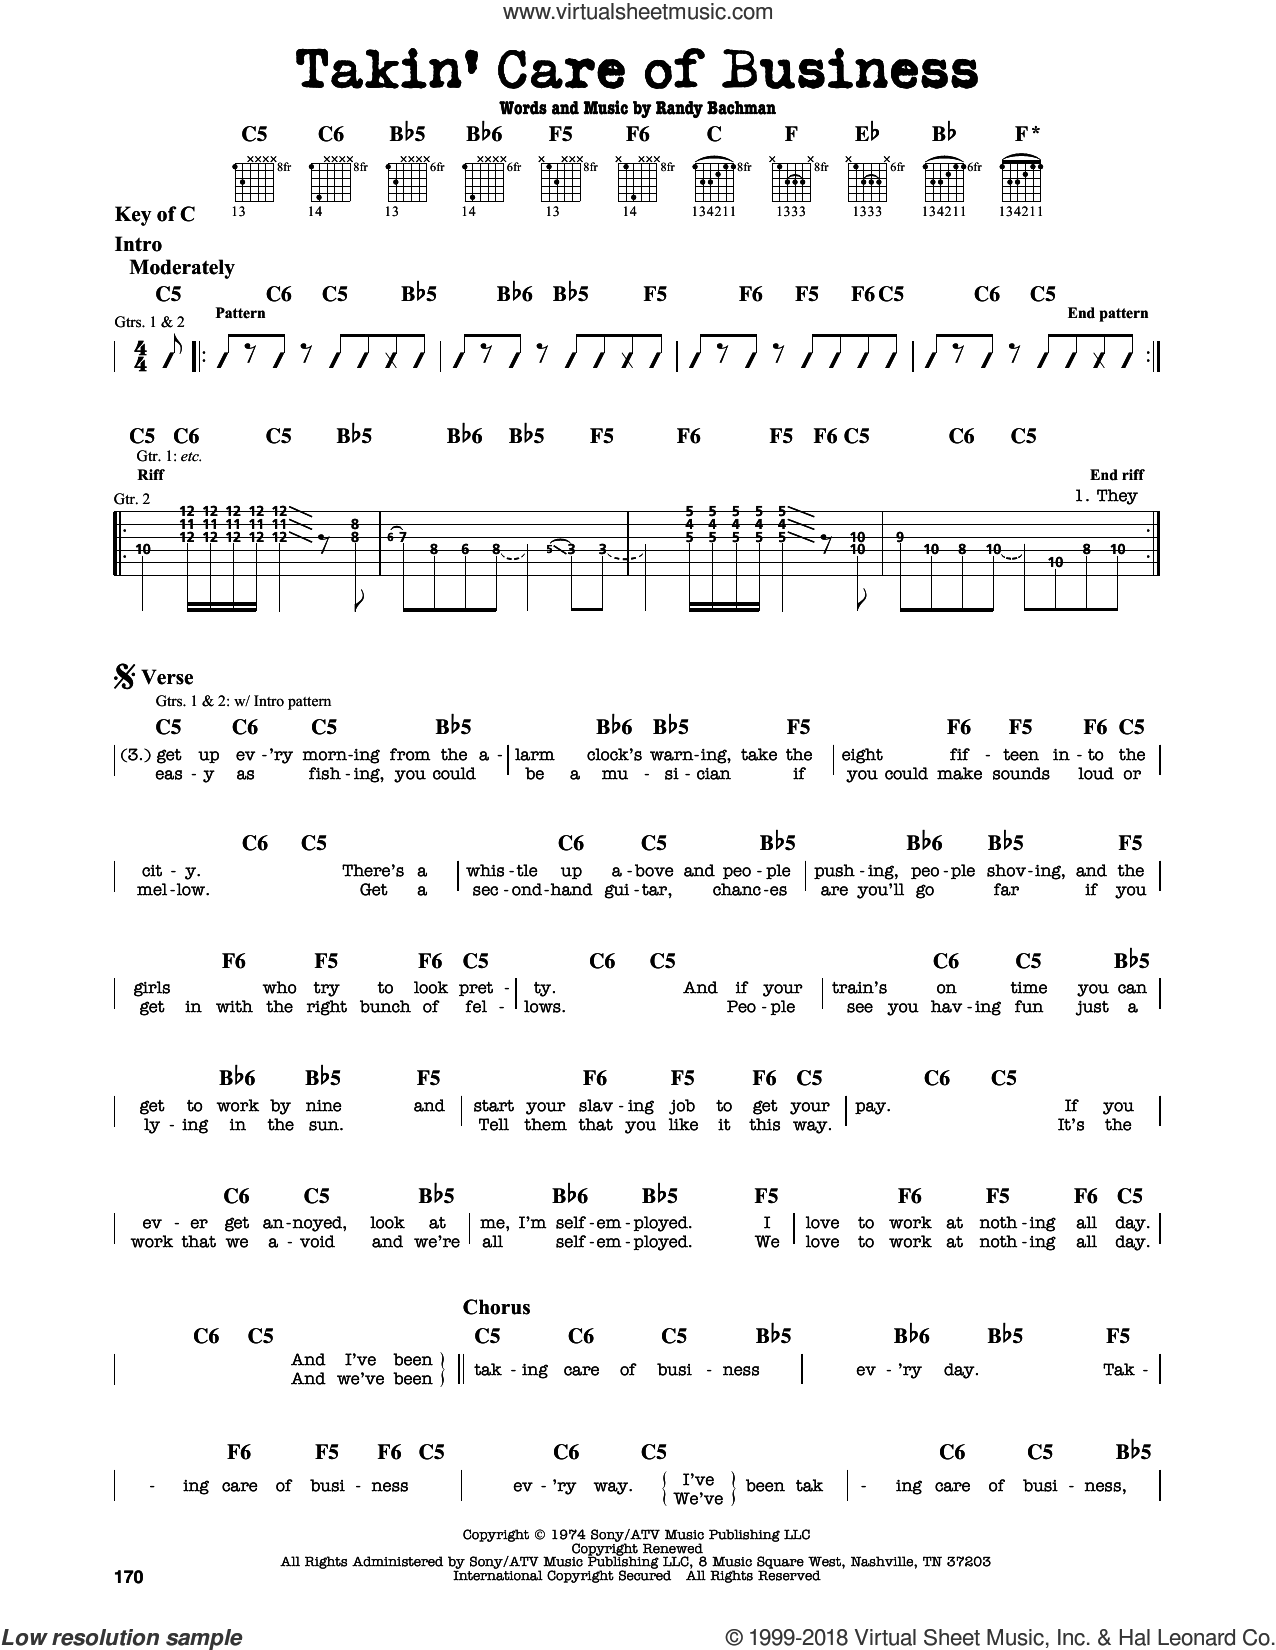 Takin' Care Of Business sheet music for guitar solo (lead sheet) by Randy Bachman. Score Image Preview.